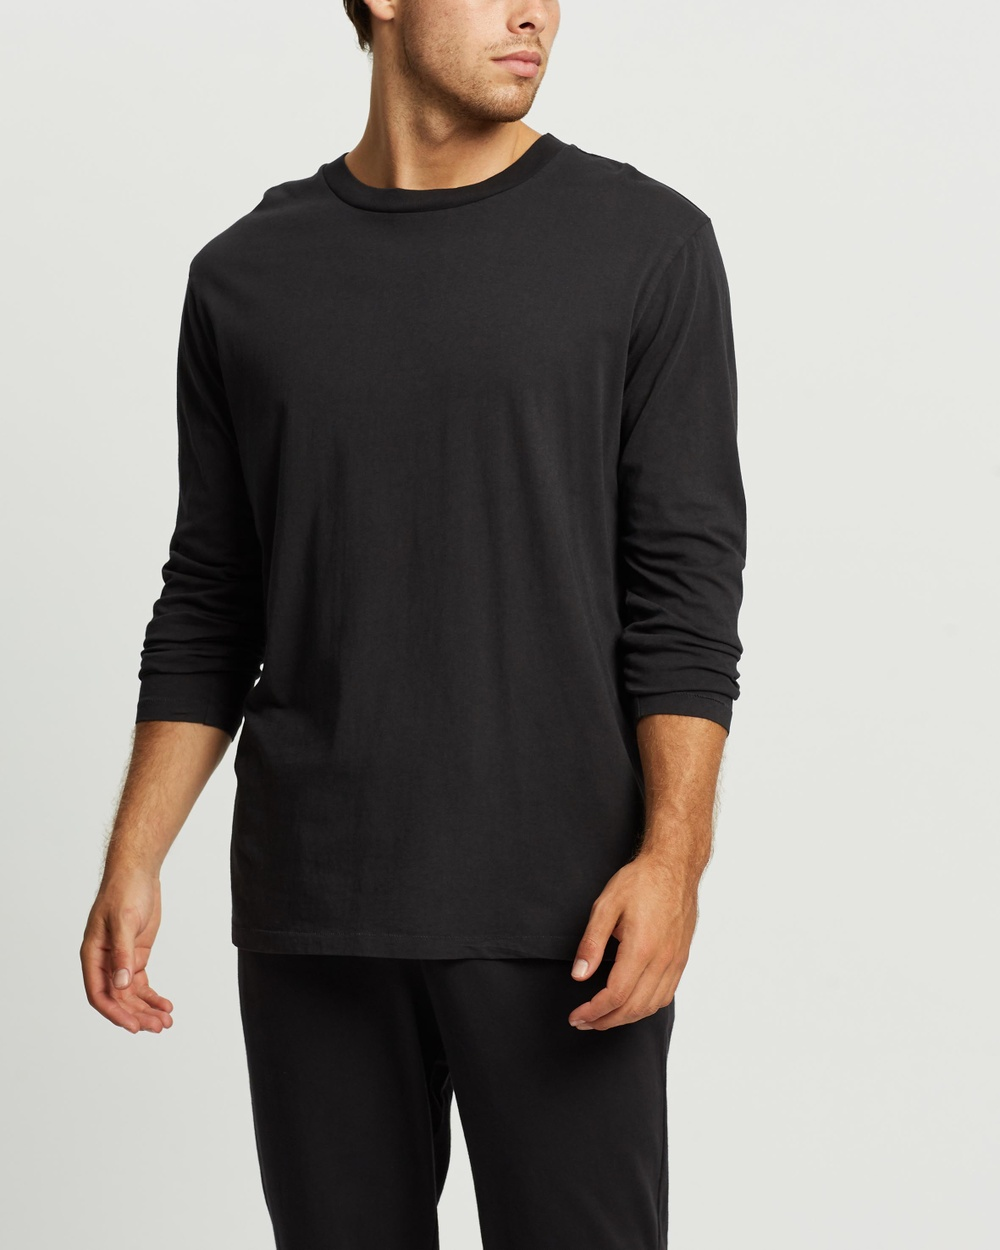 Assembly Label - Reuben Long Sleeve Tee - T-Shirts & Singlets (Washed Black) Reuben Long Sleeve Tee